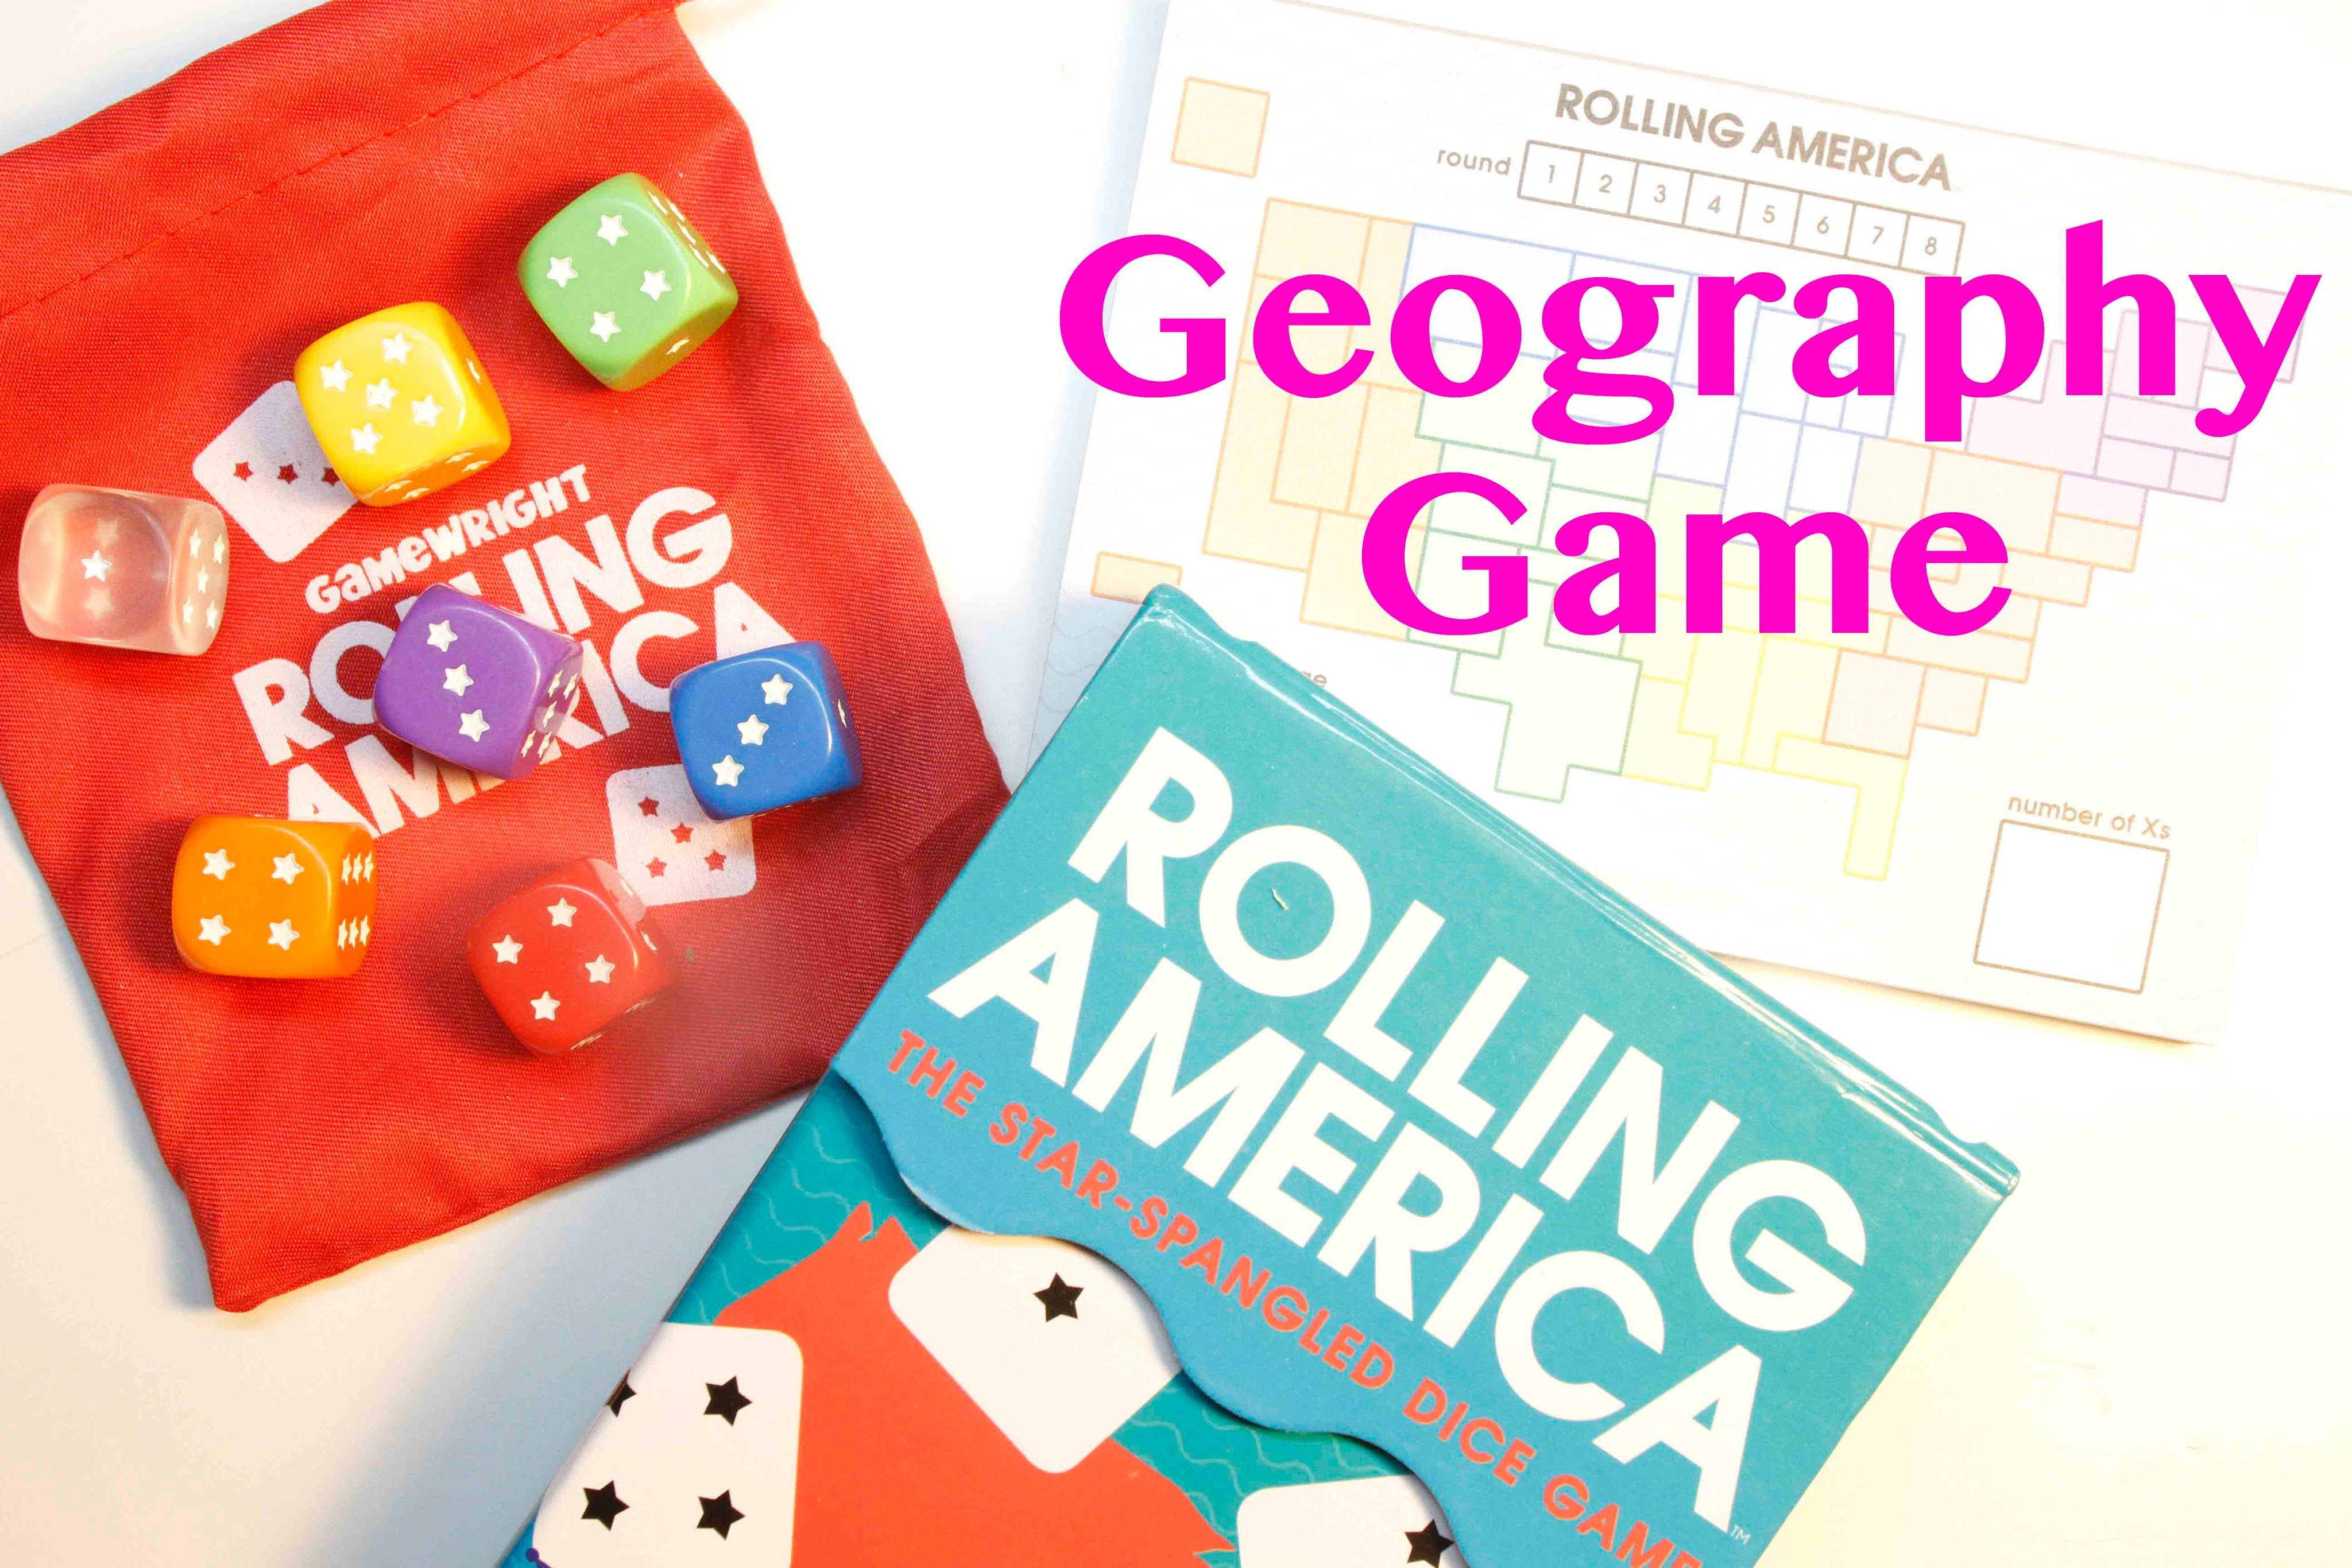 Your kids will memorize all of the 50 states in no time with ... Games To Memorize The States on learning 50 states, outline 50 states, list 50 states, sing 50 states, match 50 states, name 50 states, show 50 states, practice 50 states, identify 50 states, study 50 states, label 50 states, order 50 states,